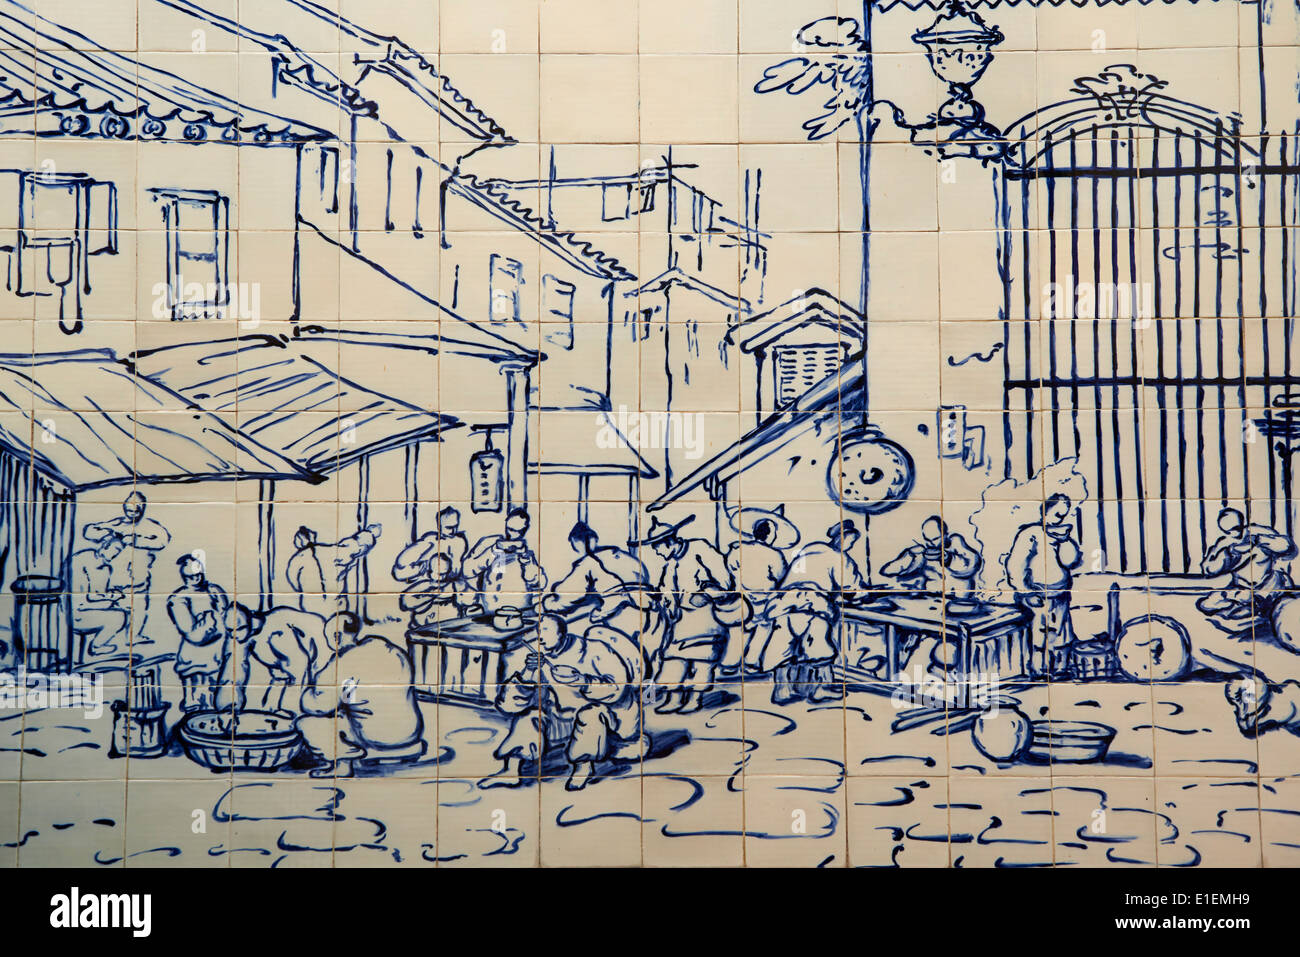 China, Macau, Tiles on the Traversa do Meio, Street Restaurant outside S. Domingos from Georges Chinnery, 1840 - Stock Image